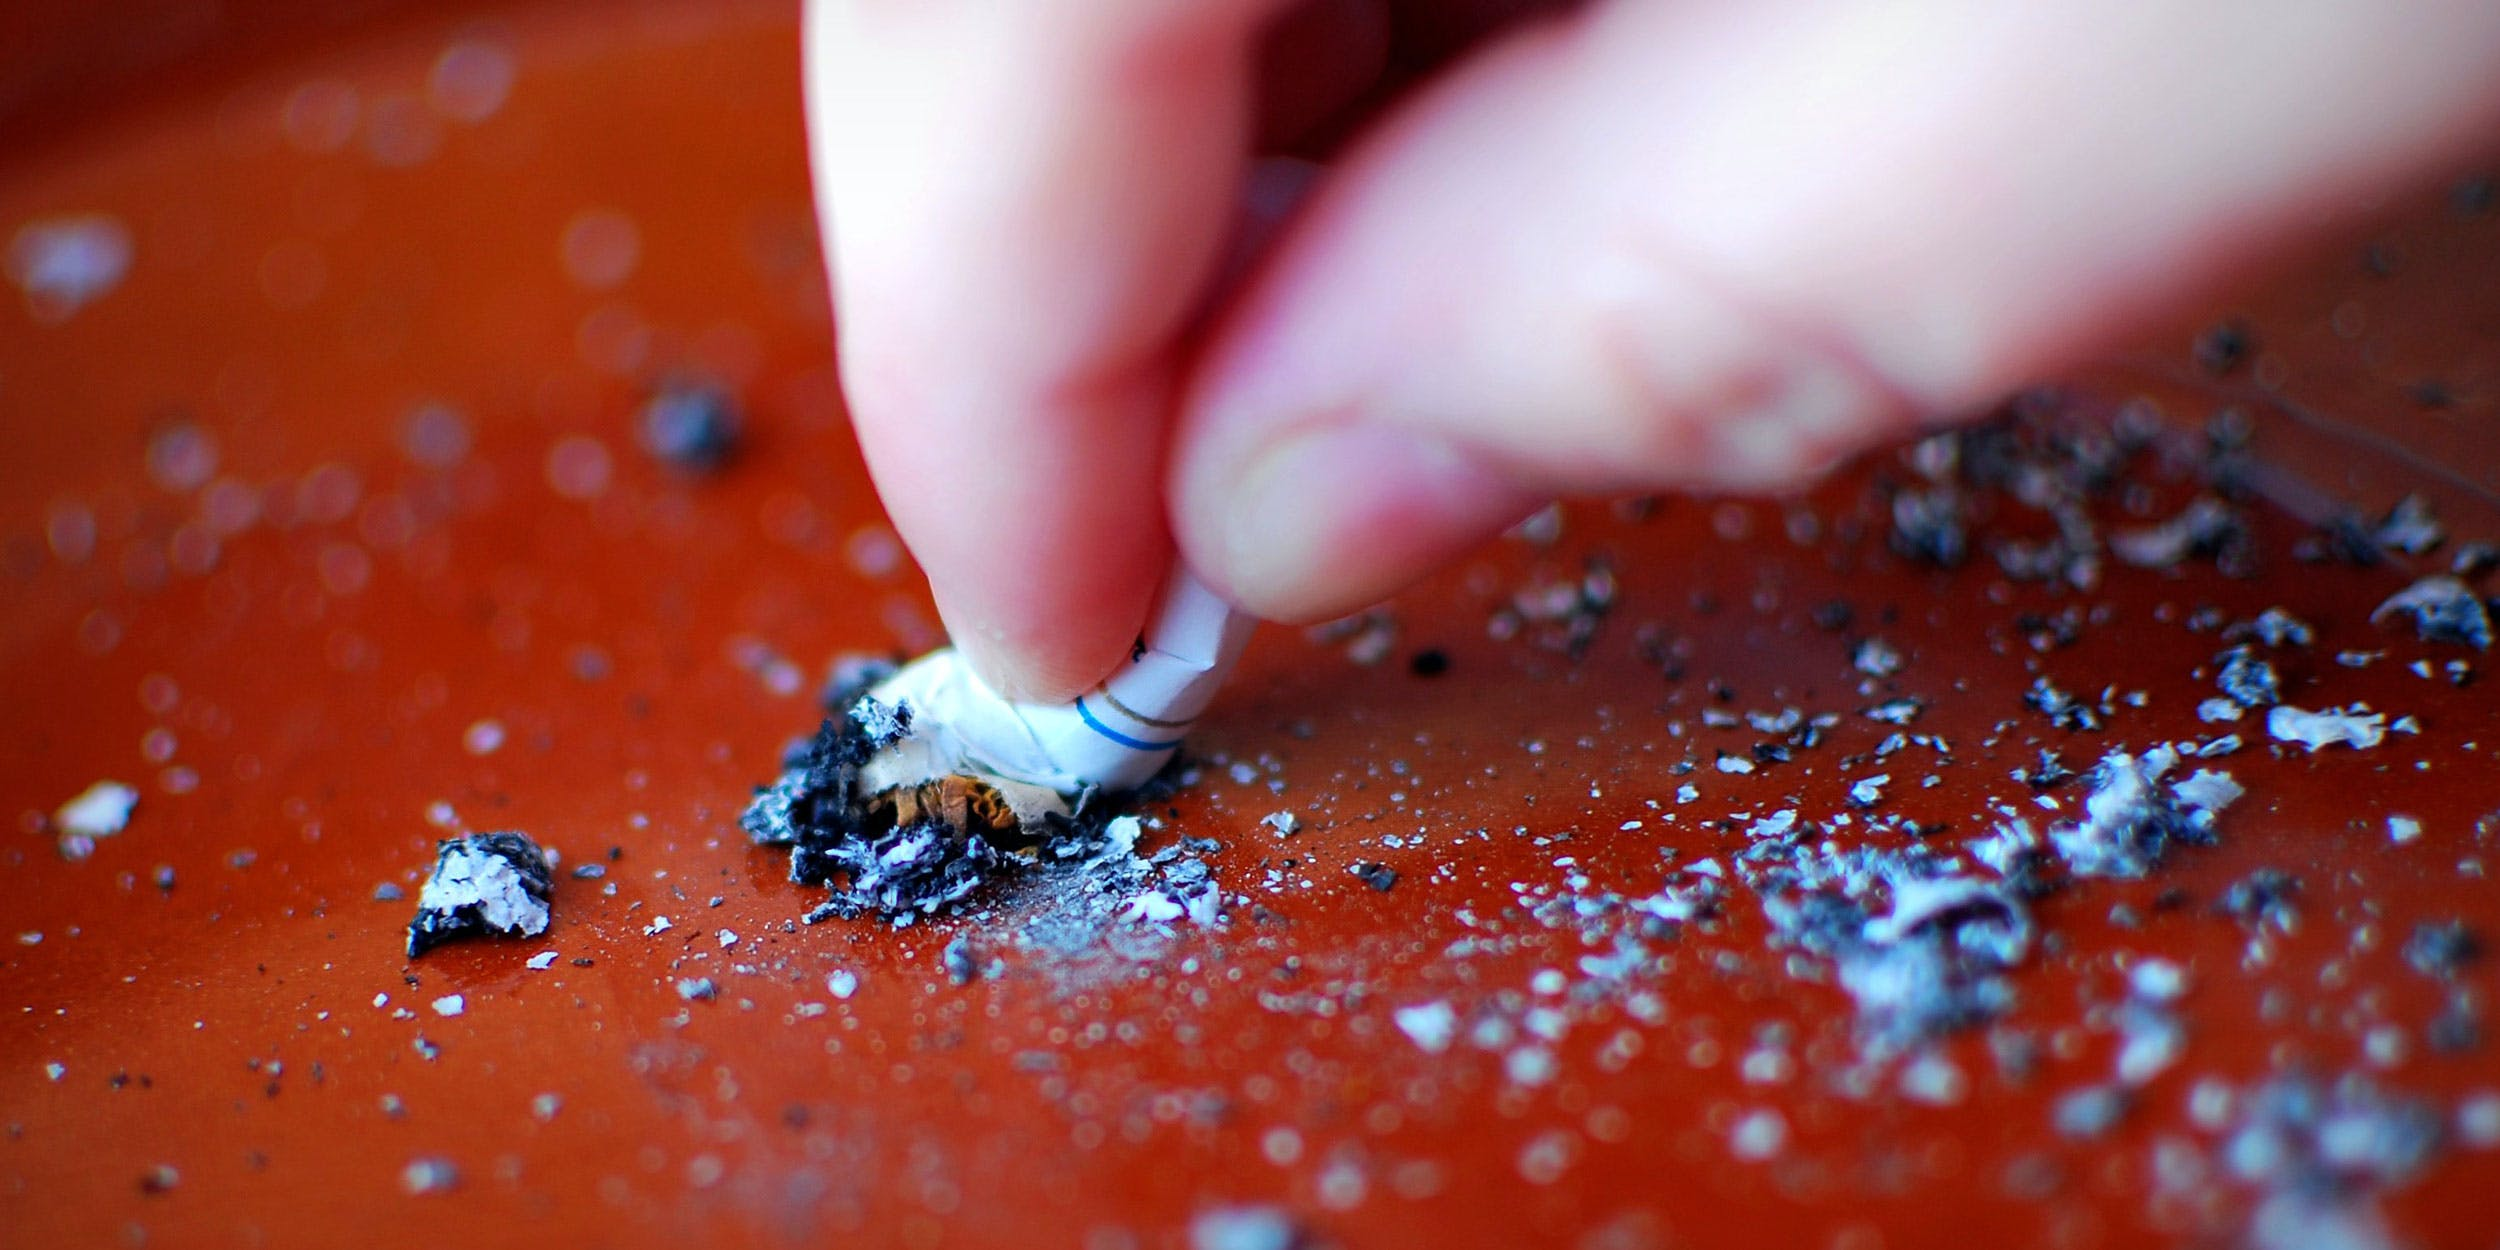 cigarette being put out on a red surface